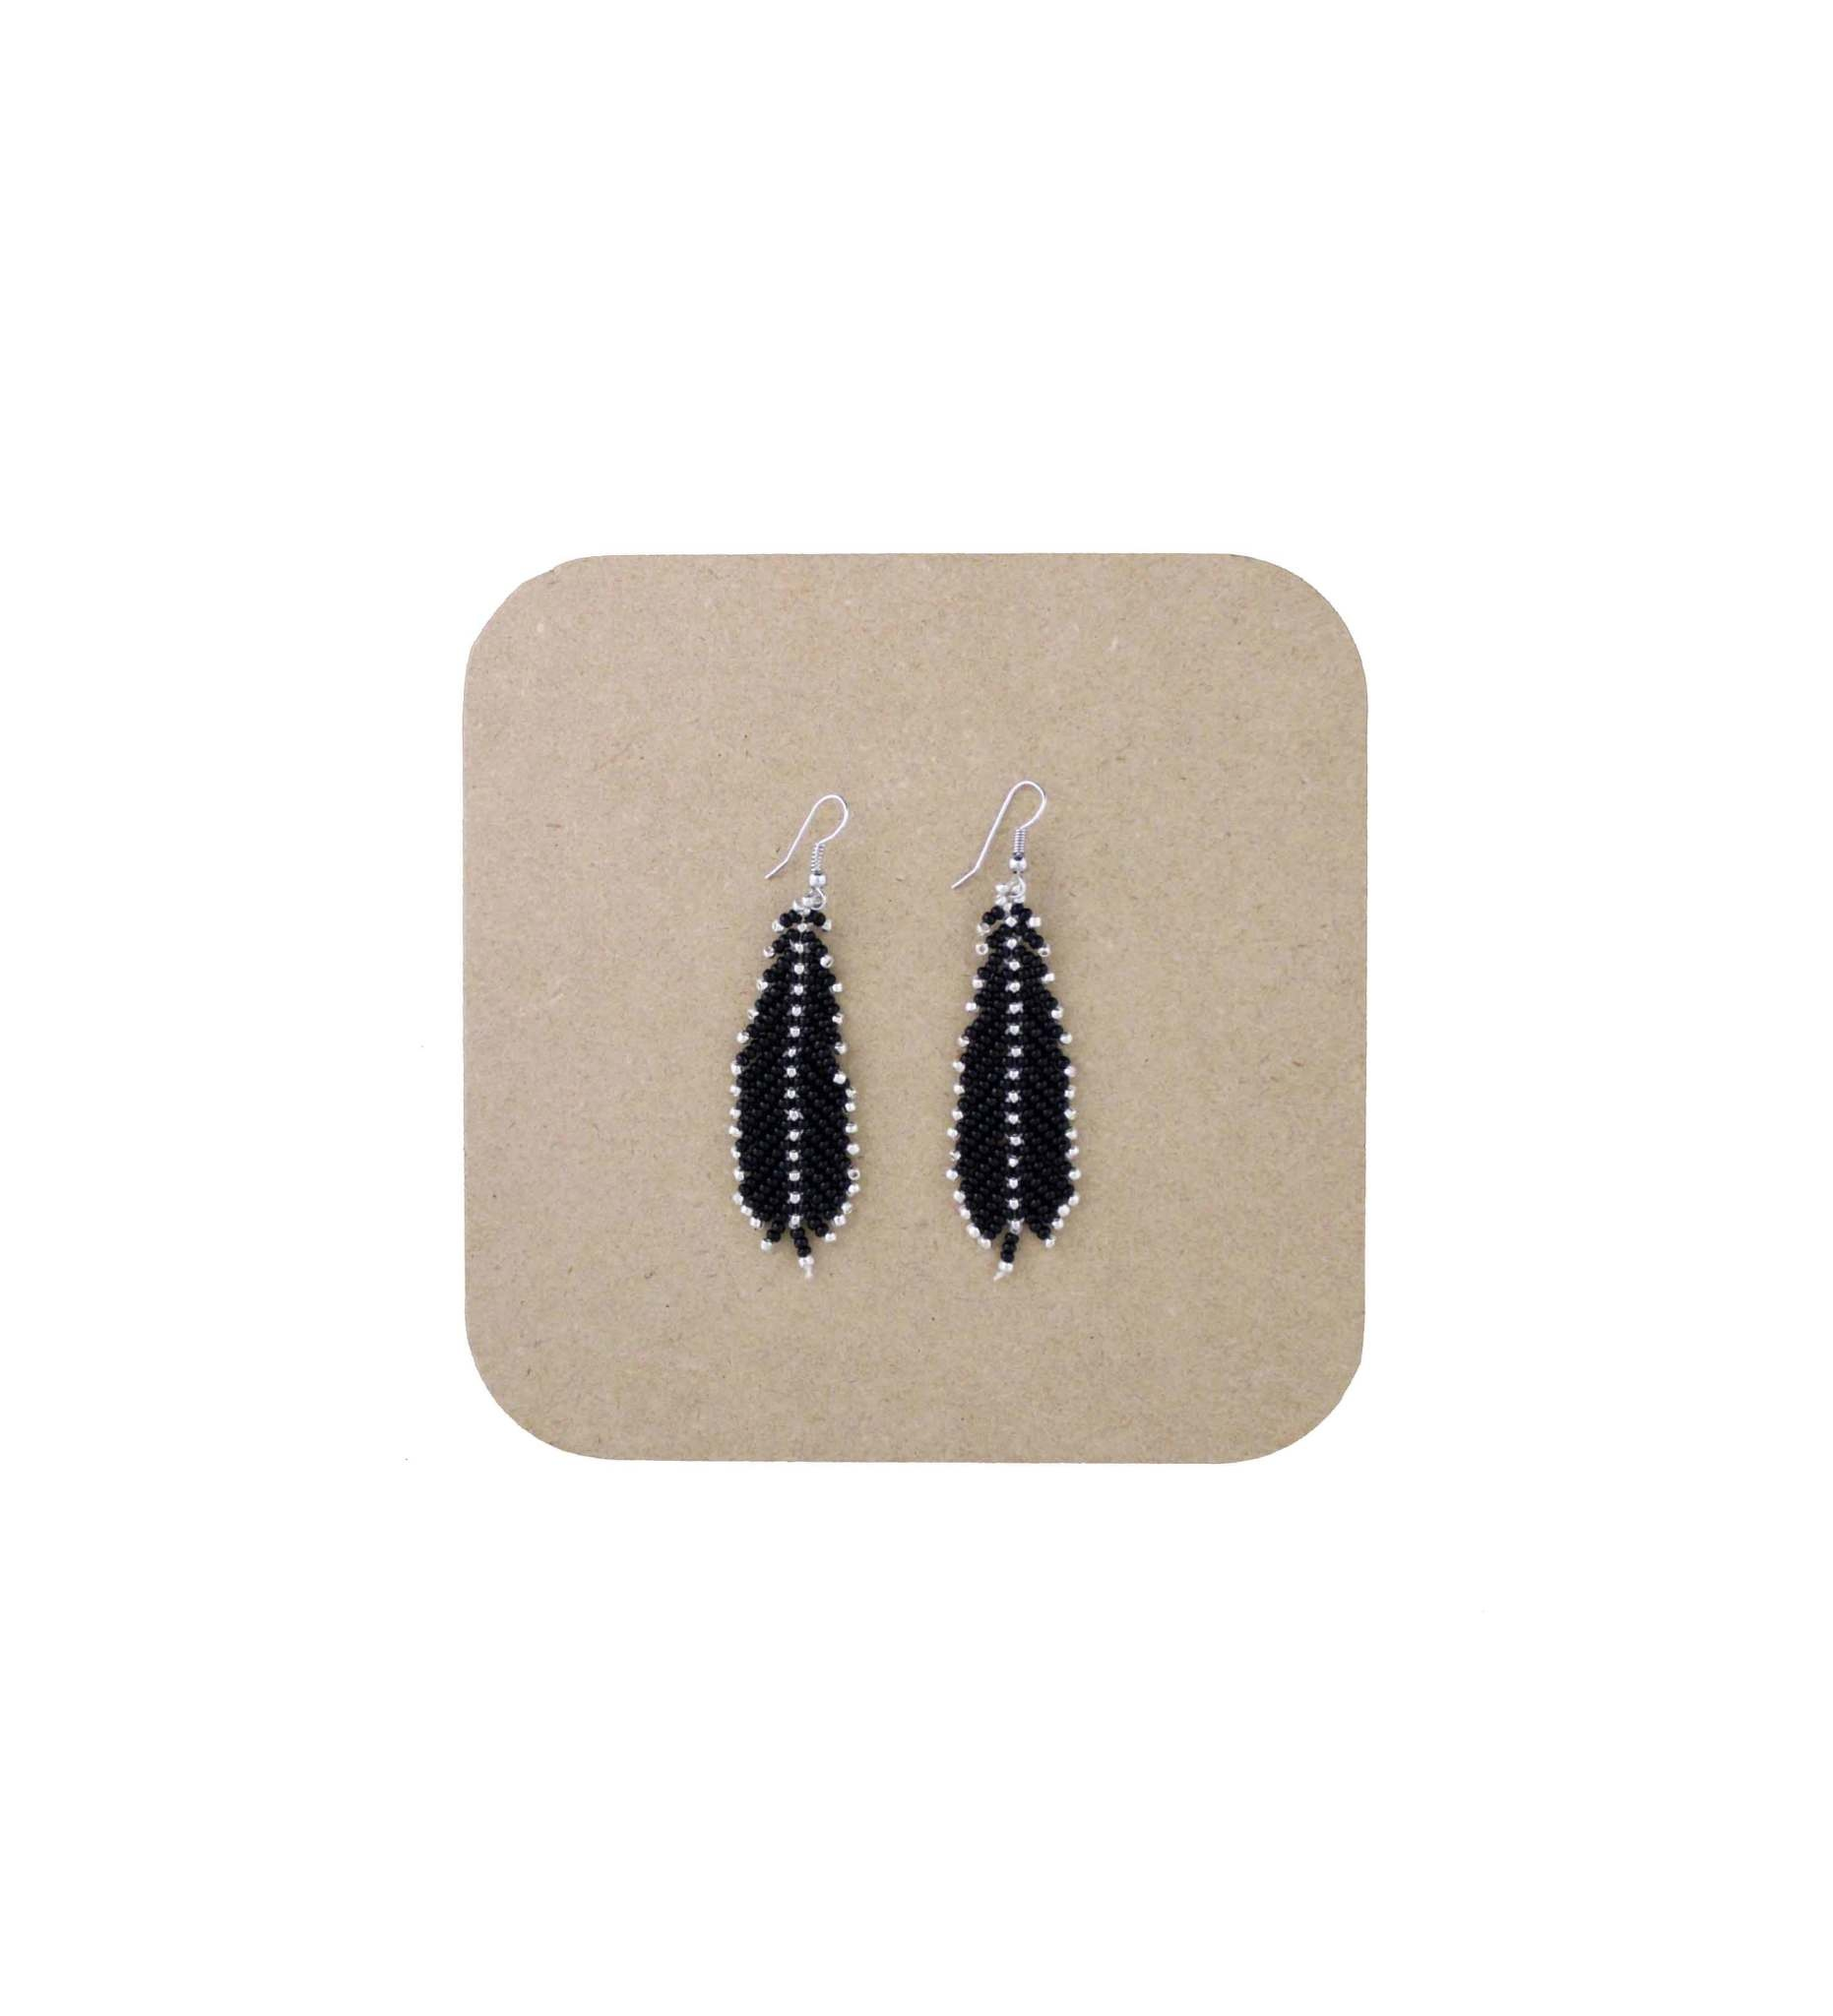 *AB 2019A Earrings